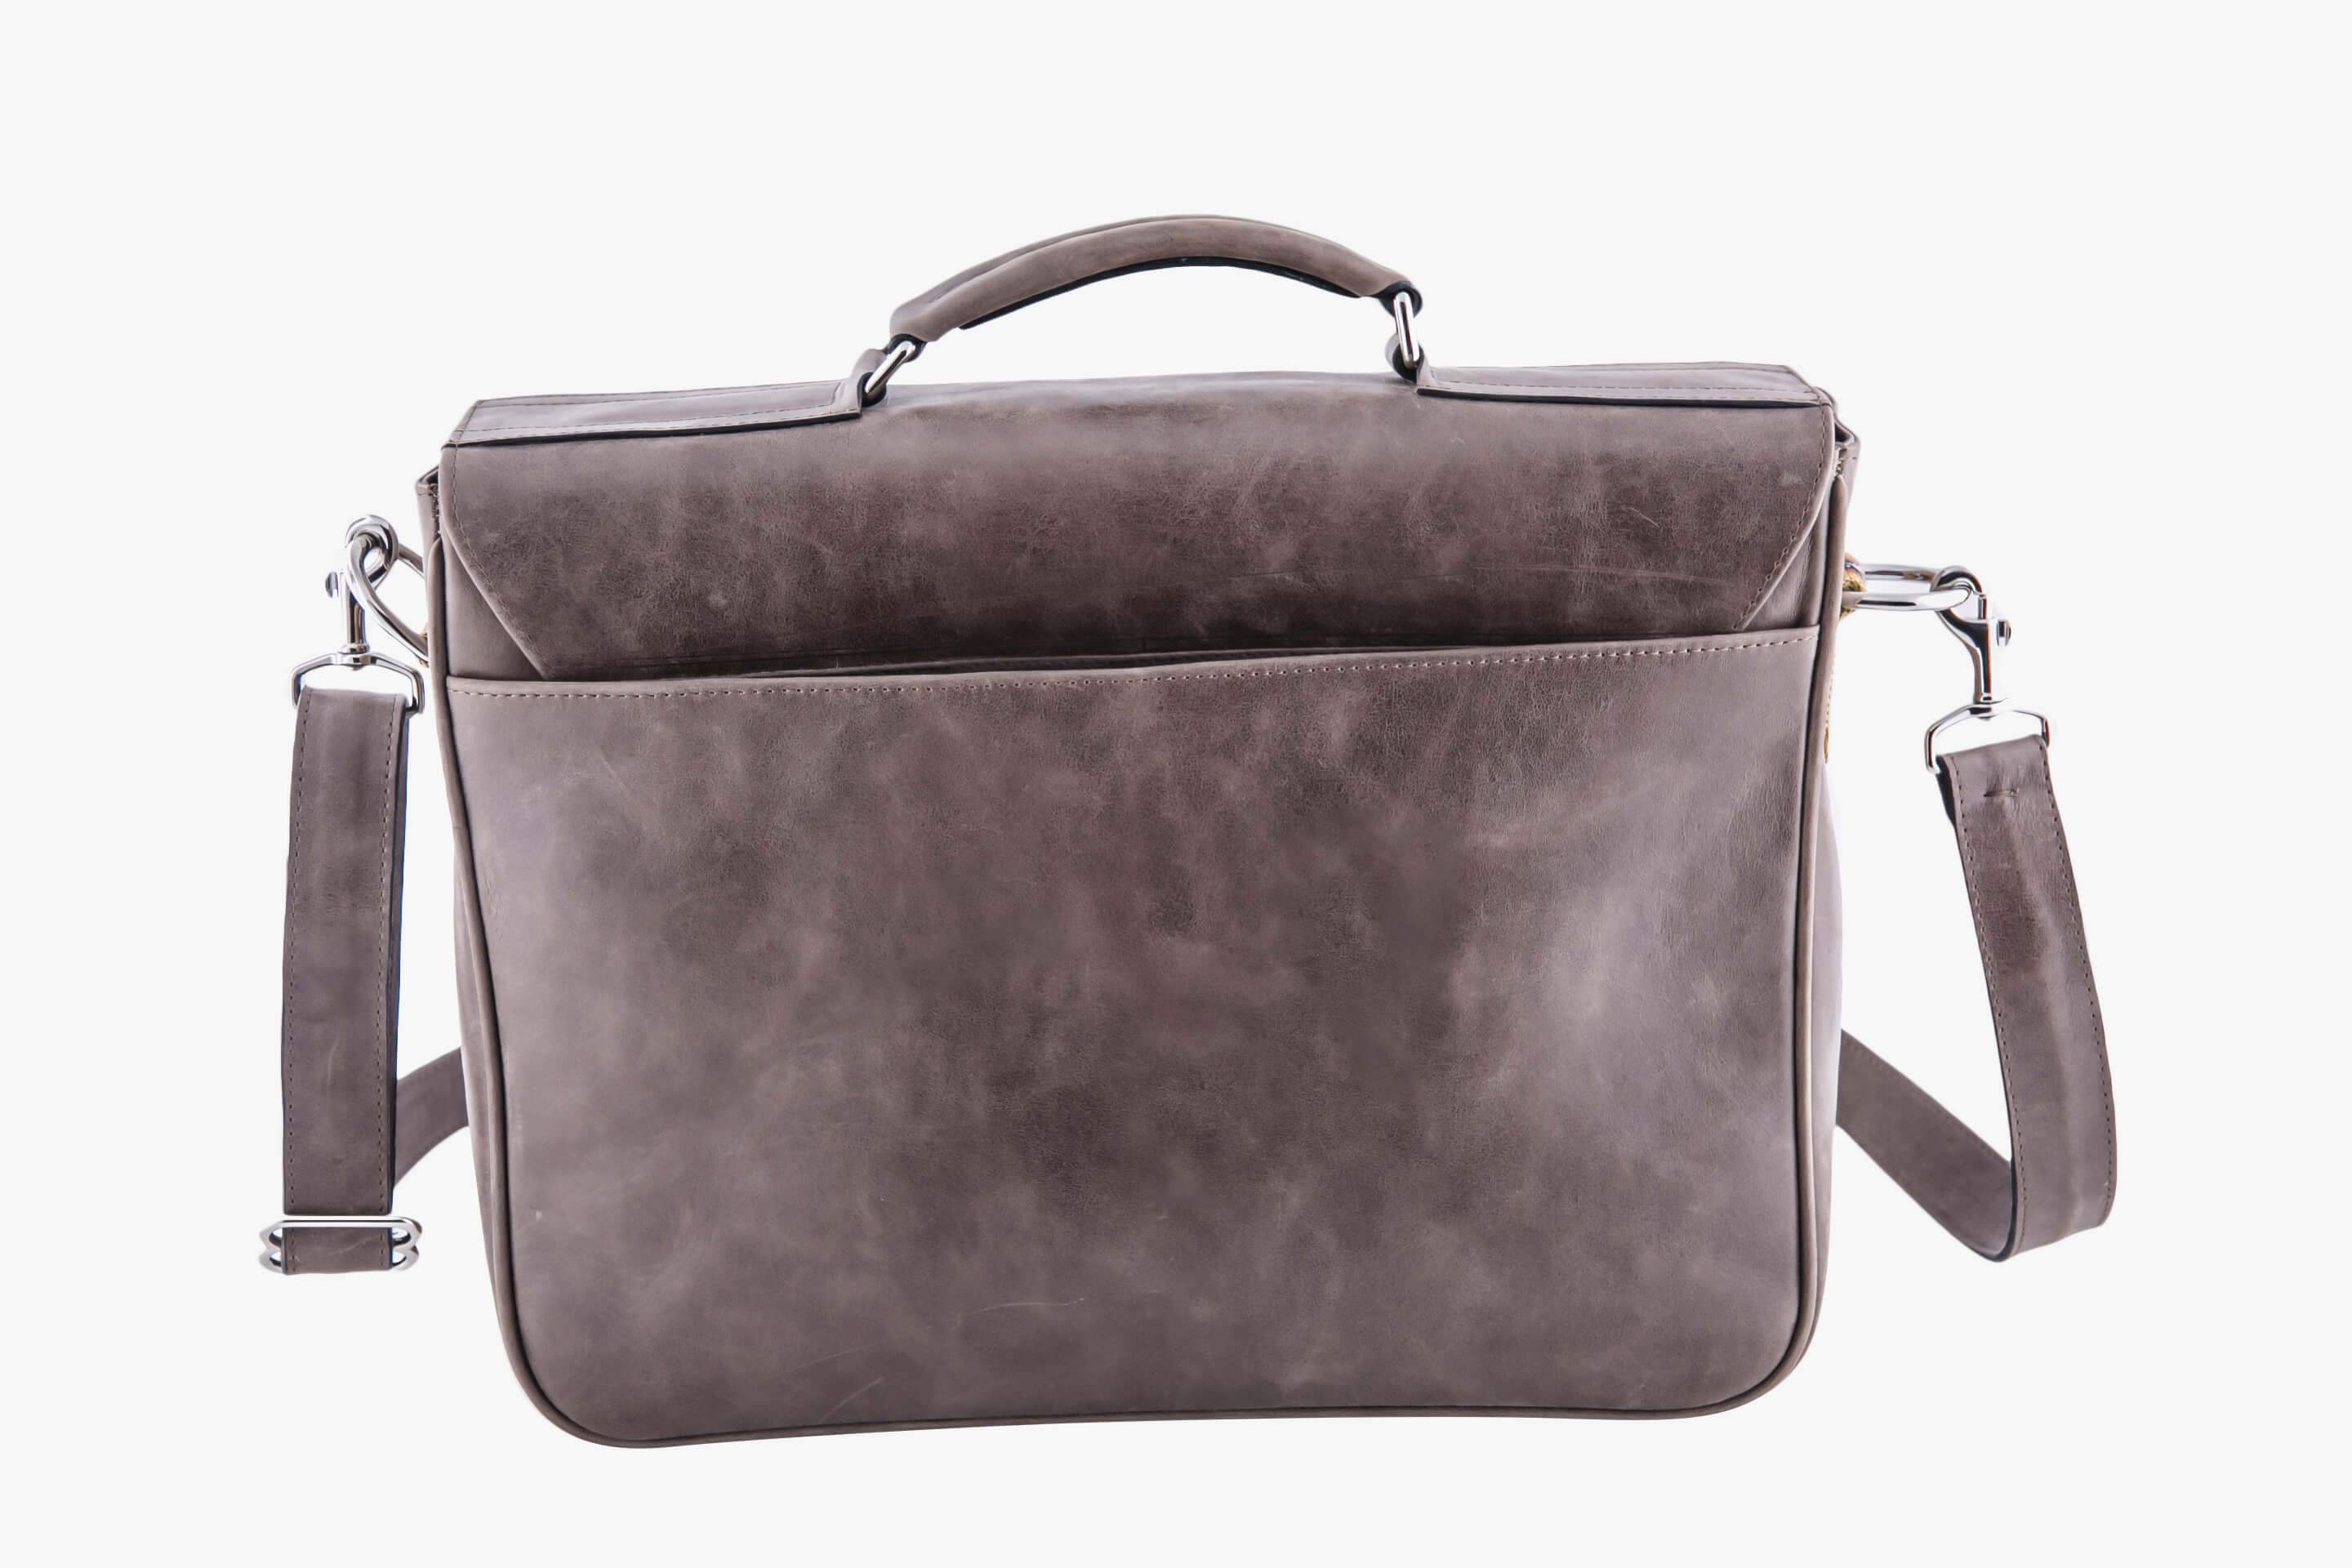 Sturdy Leather Messenger Bag